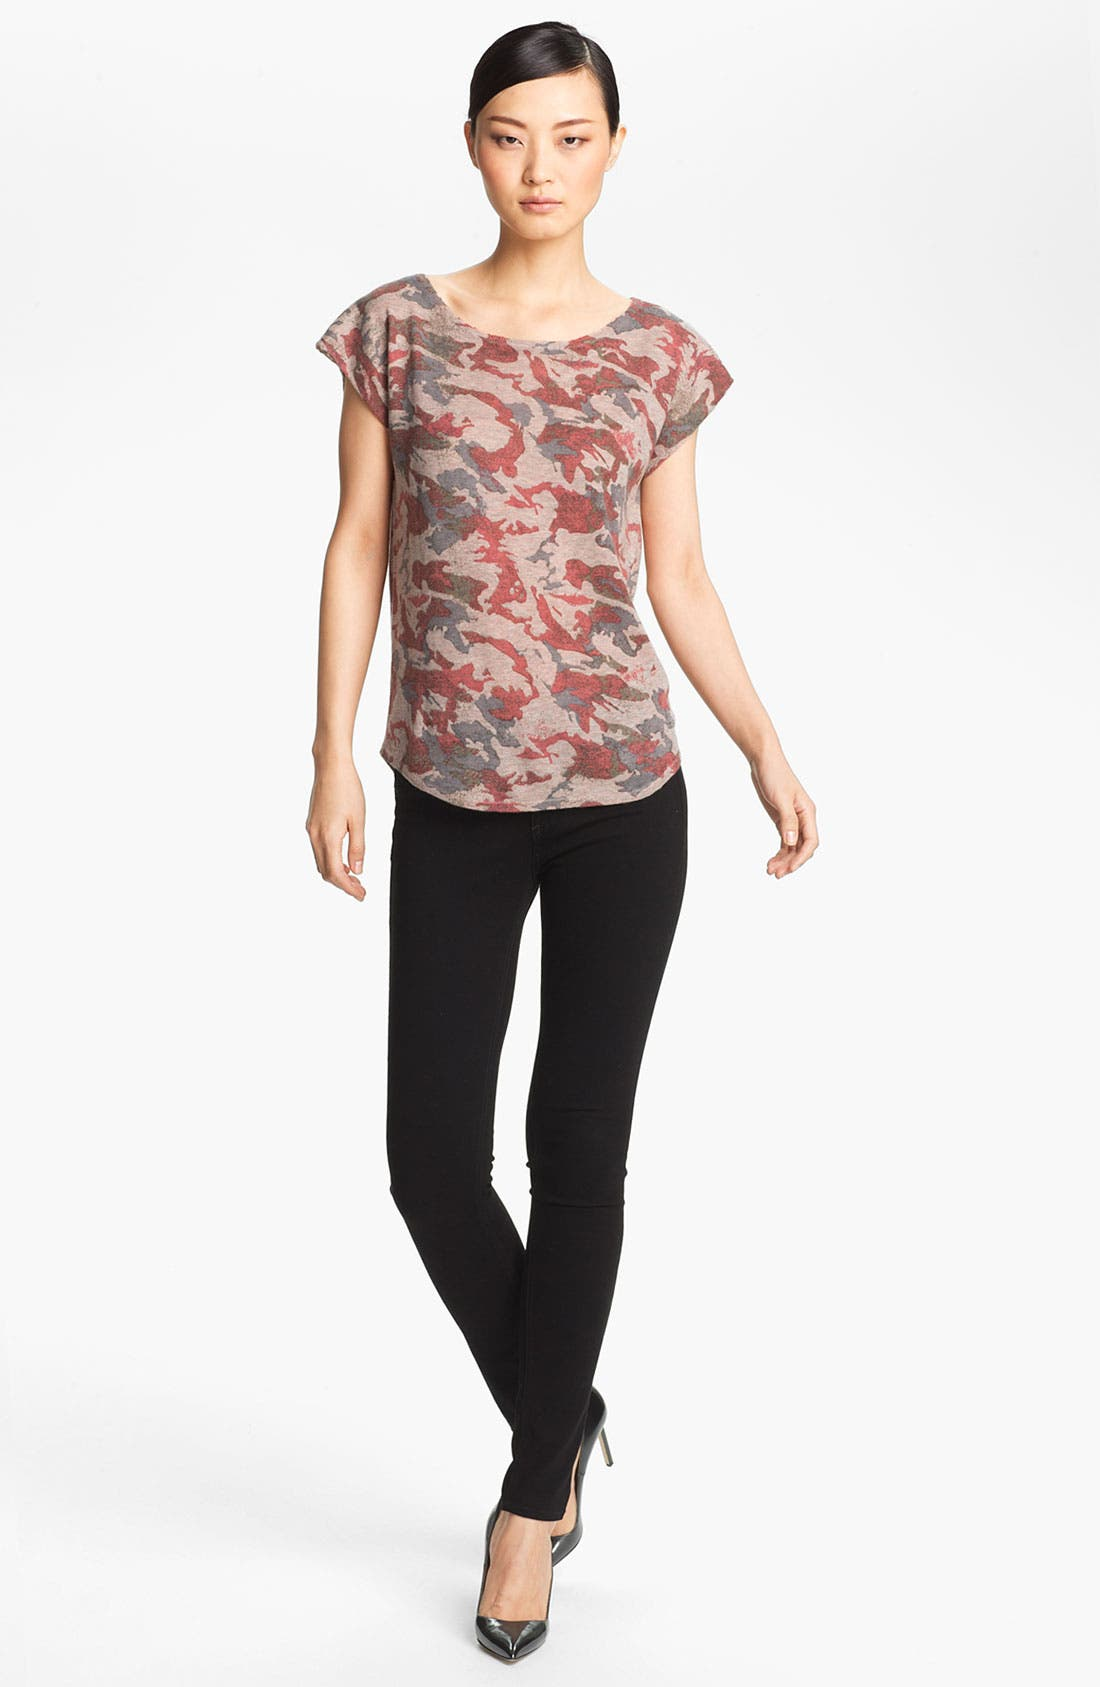 Main Image - Zadig & Voltaire 'Data' Camo Print Cashmere Tee